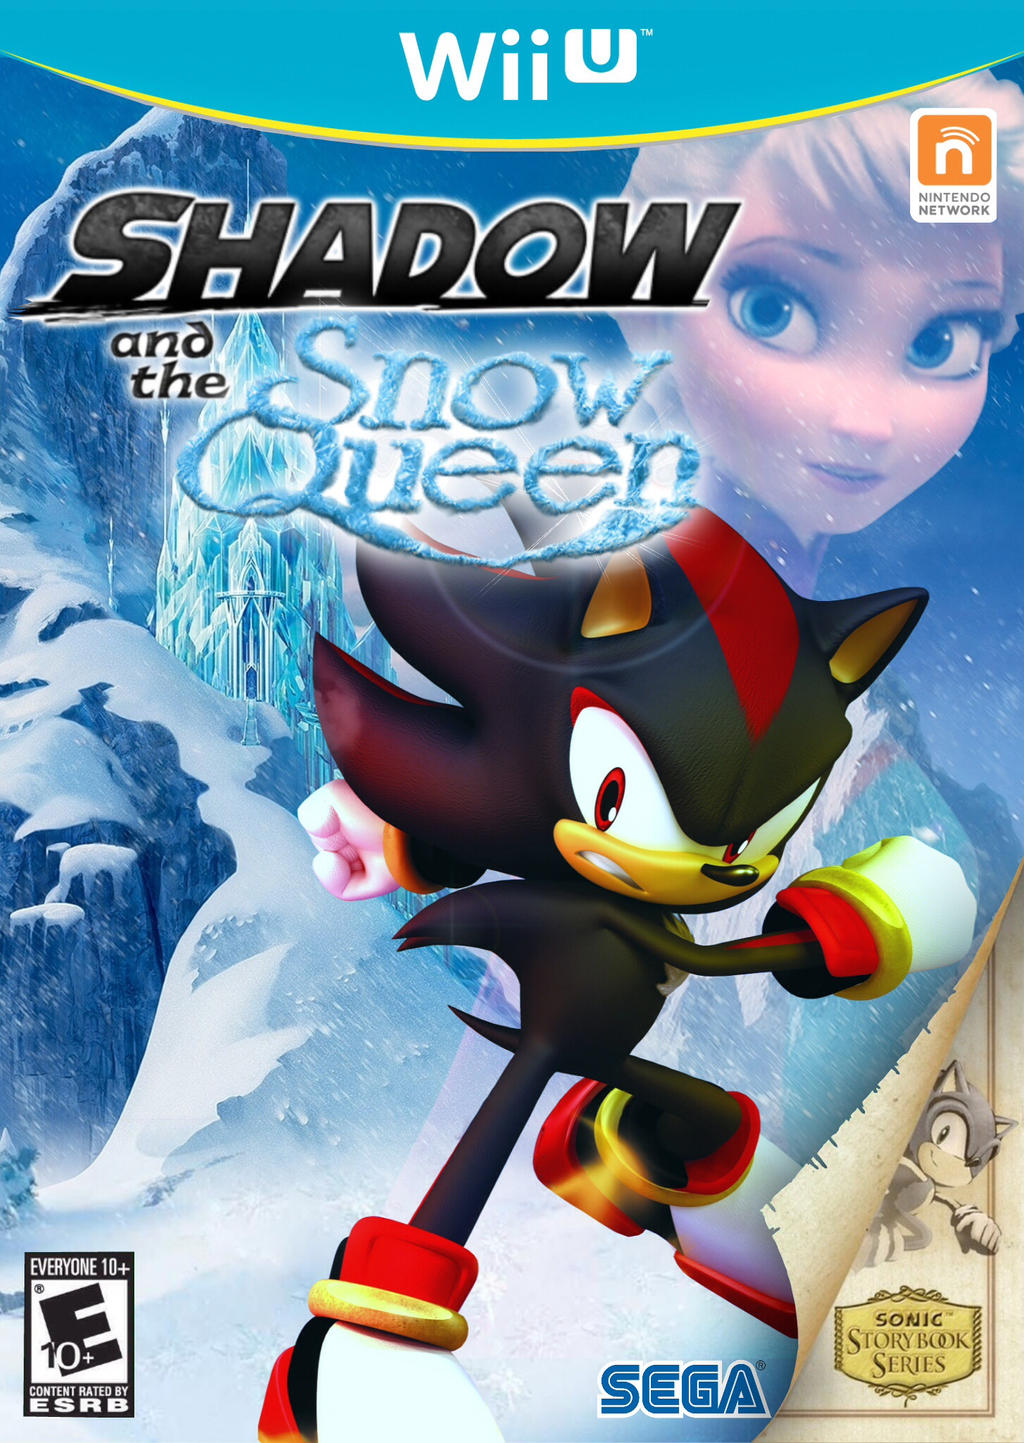 Shadow and the Snow Queen